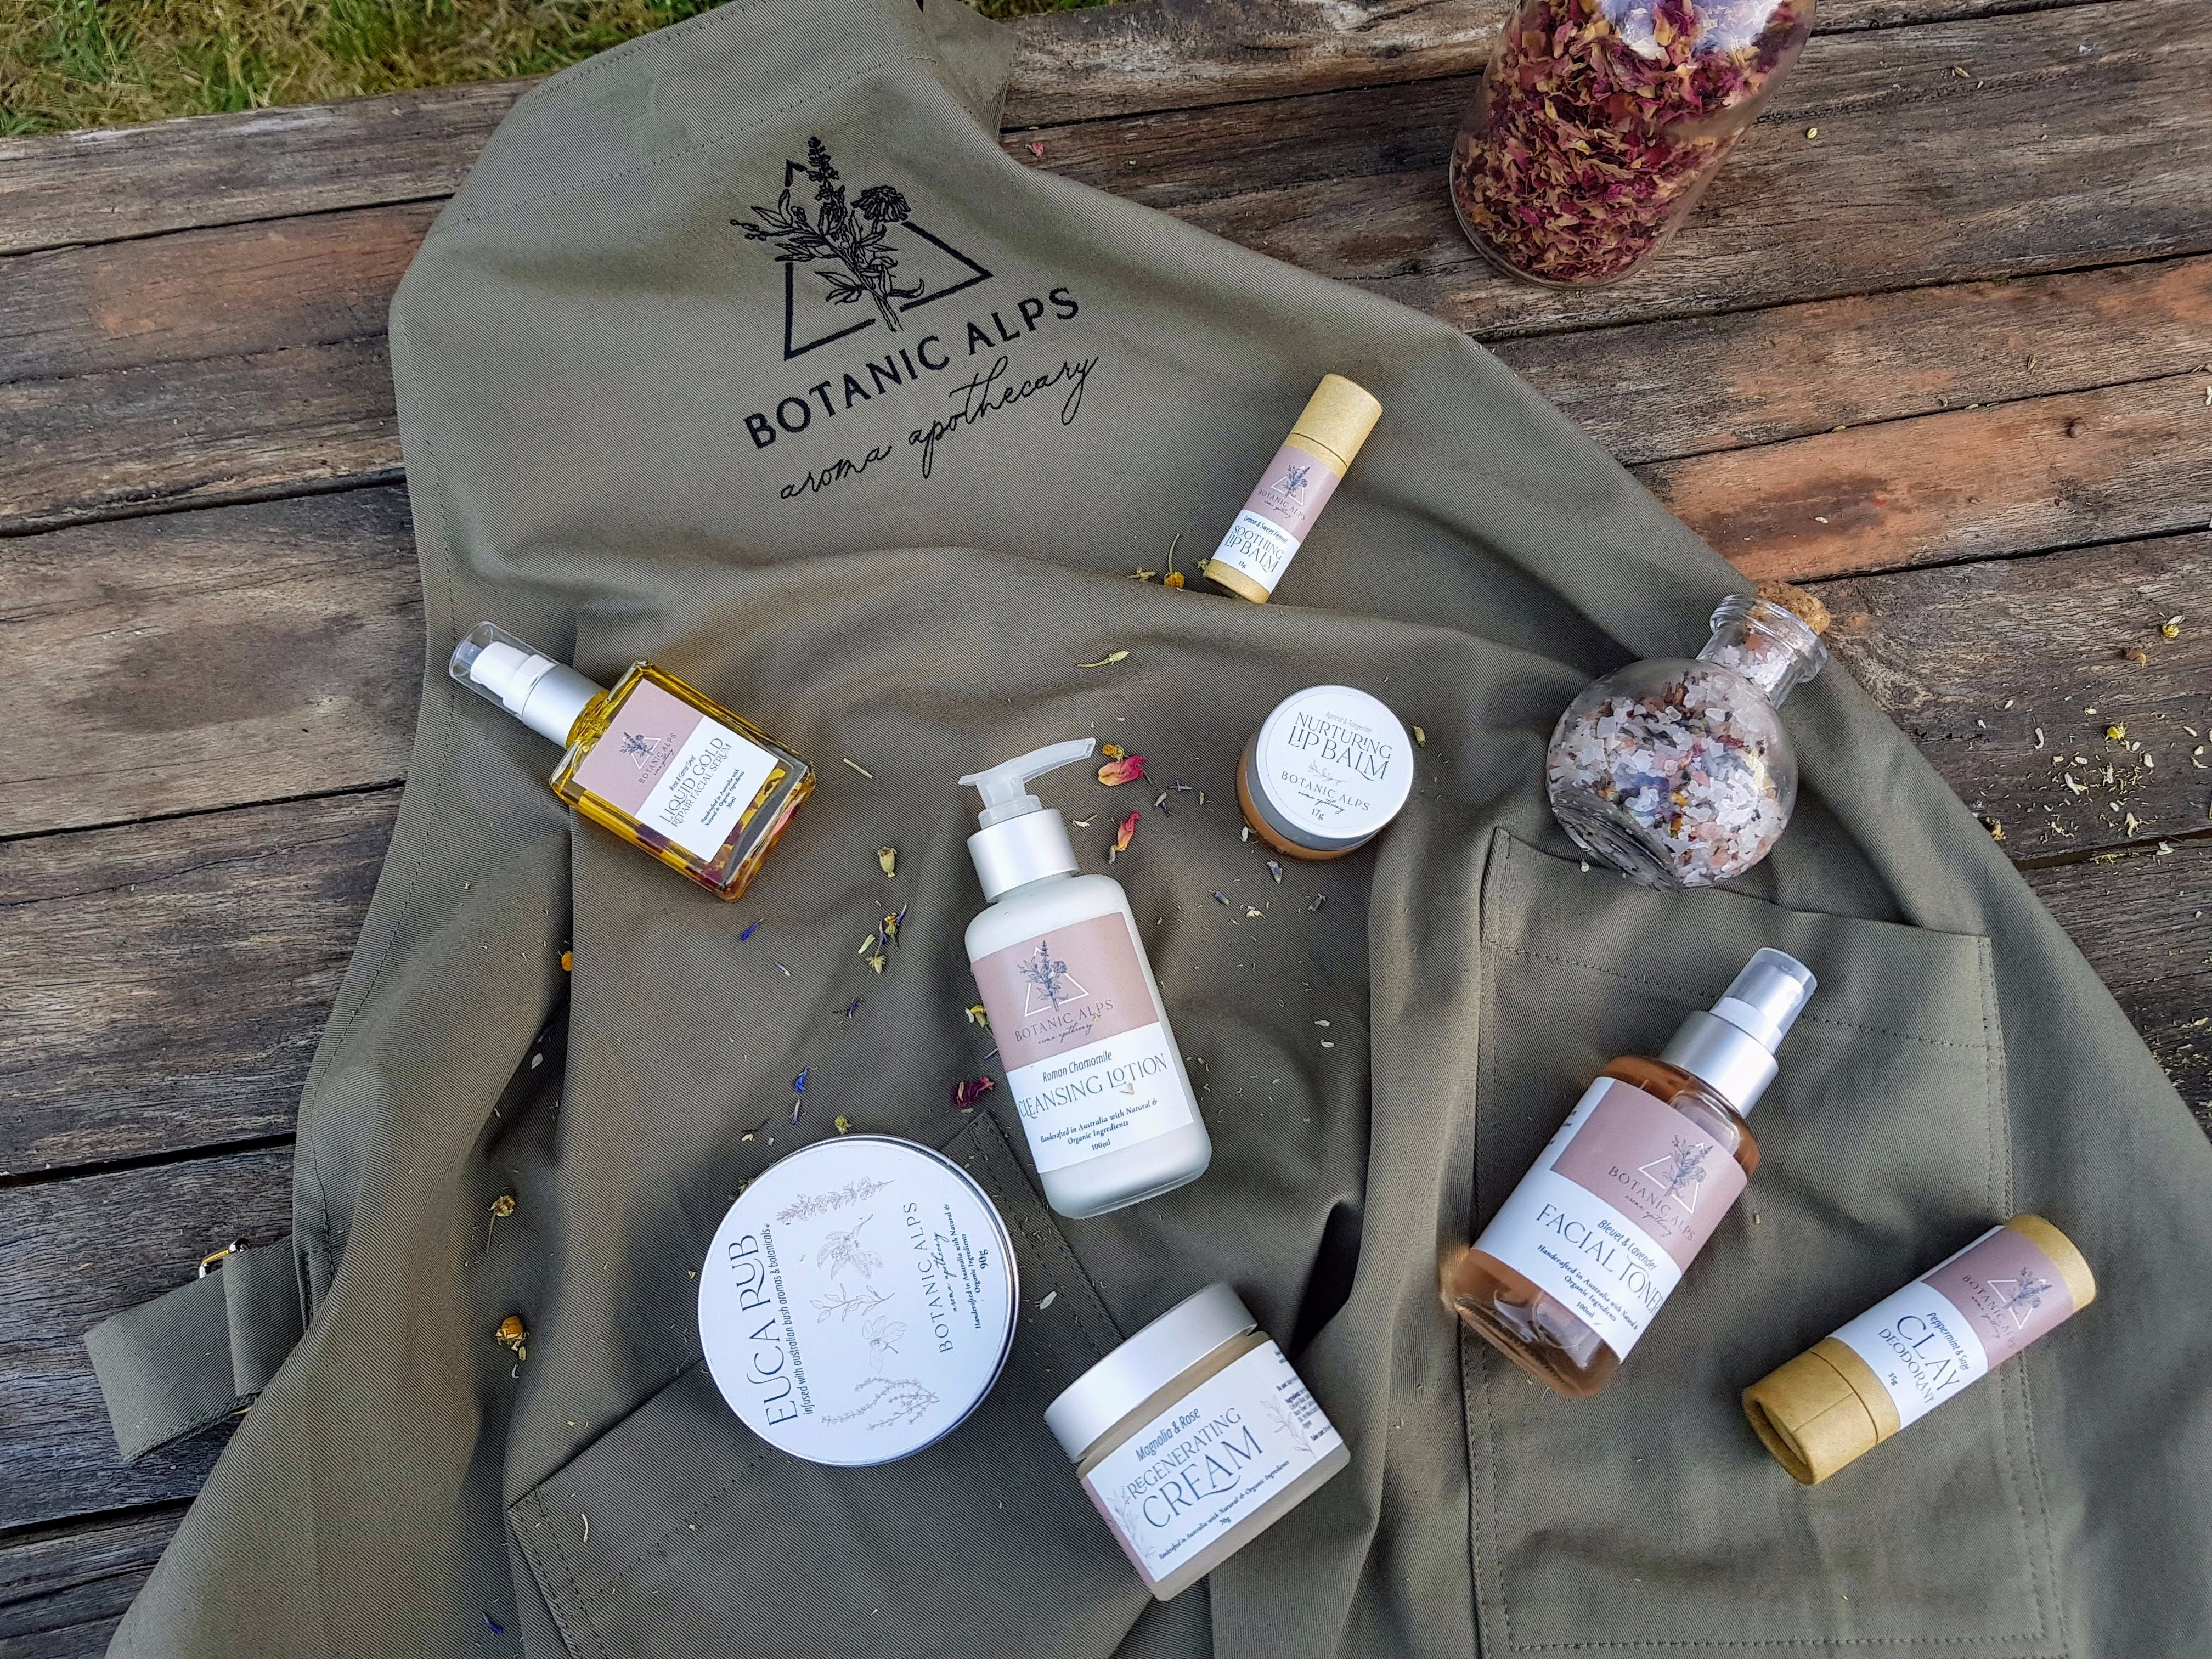 Botanic Alps Aroma Apothecary - Accommodation Sydney